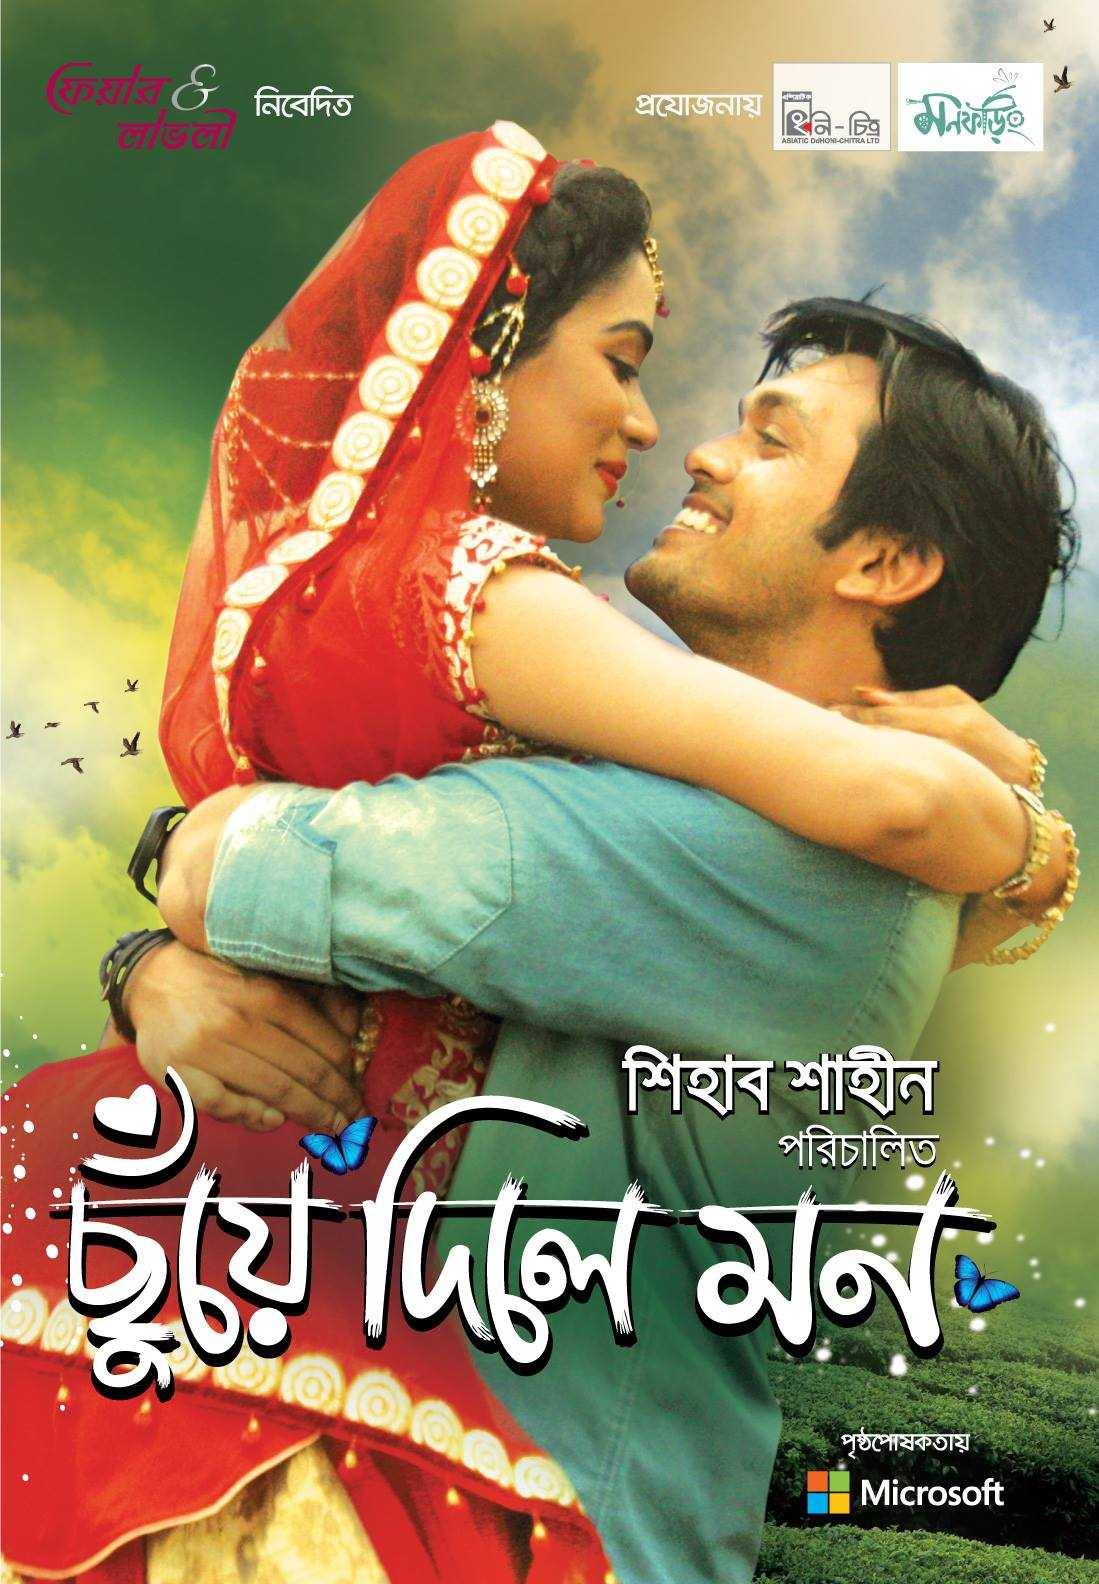 Chuye Dile Mon (2015) Bangla Movie 720p Bluray x265 AAC 700MB